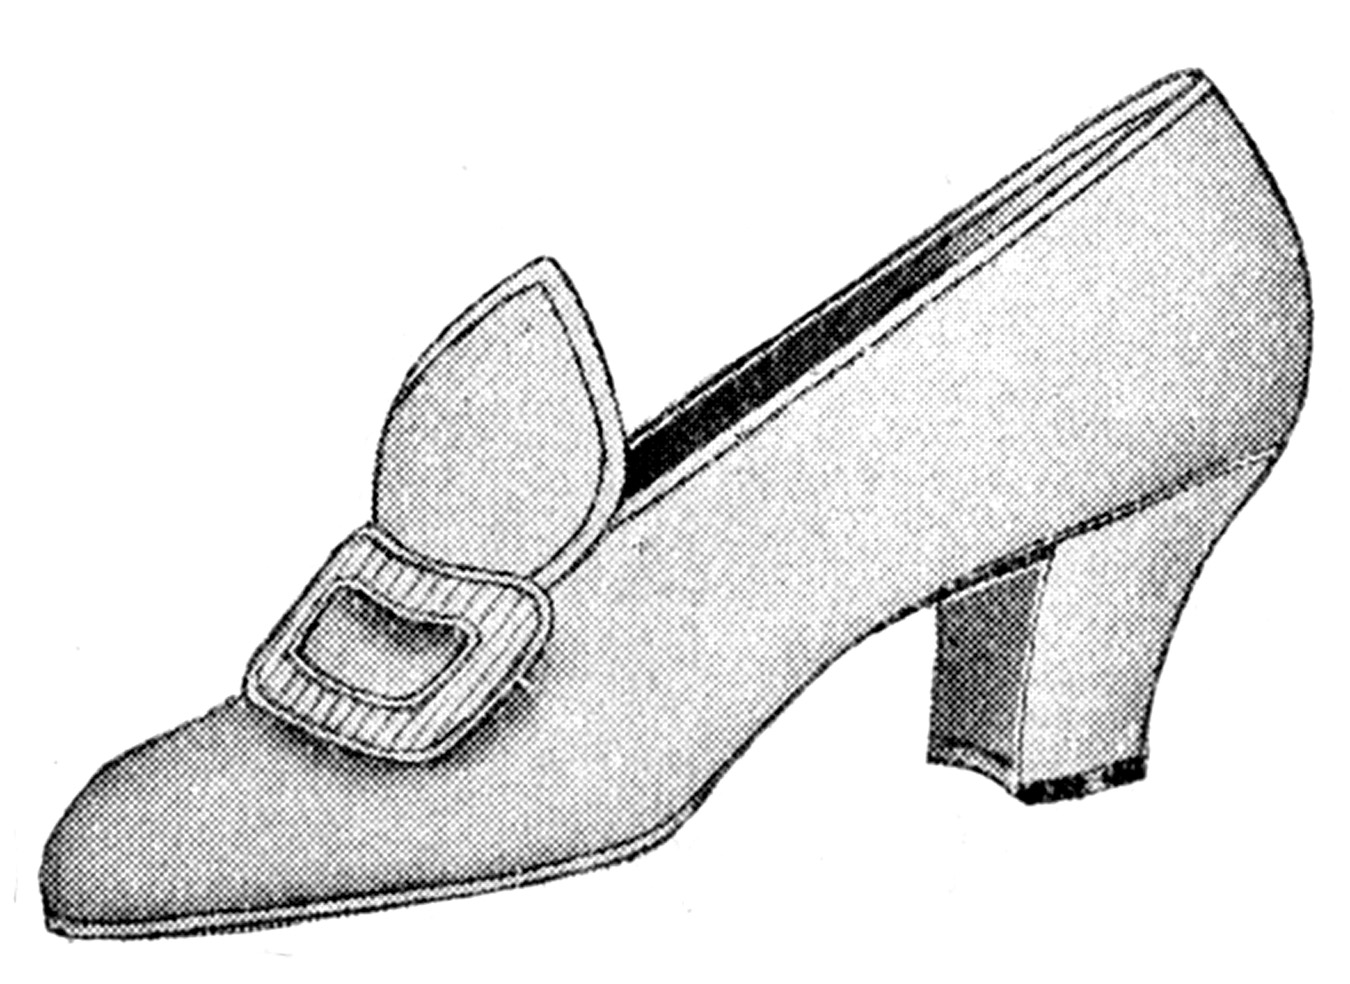 Ladies Orange Dress Shoes Clipart.